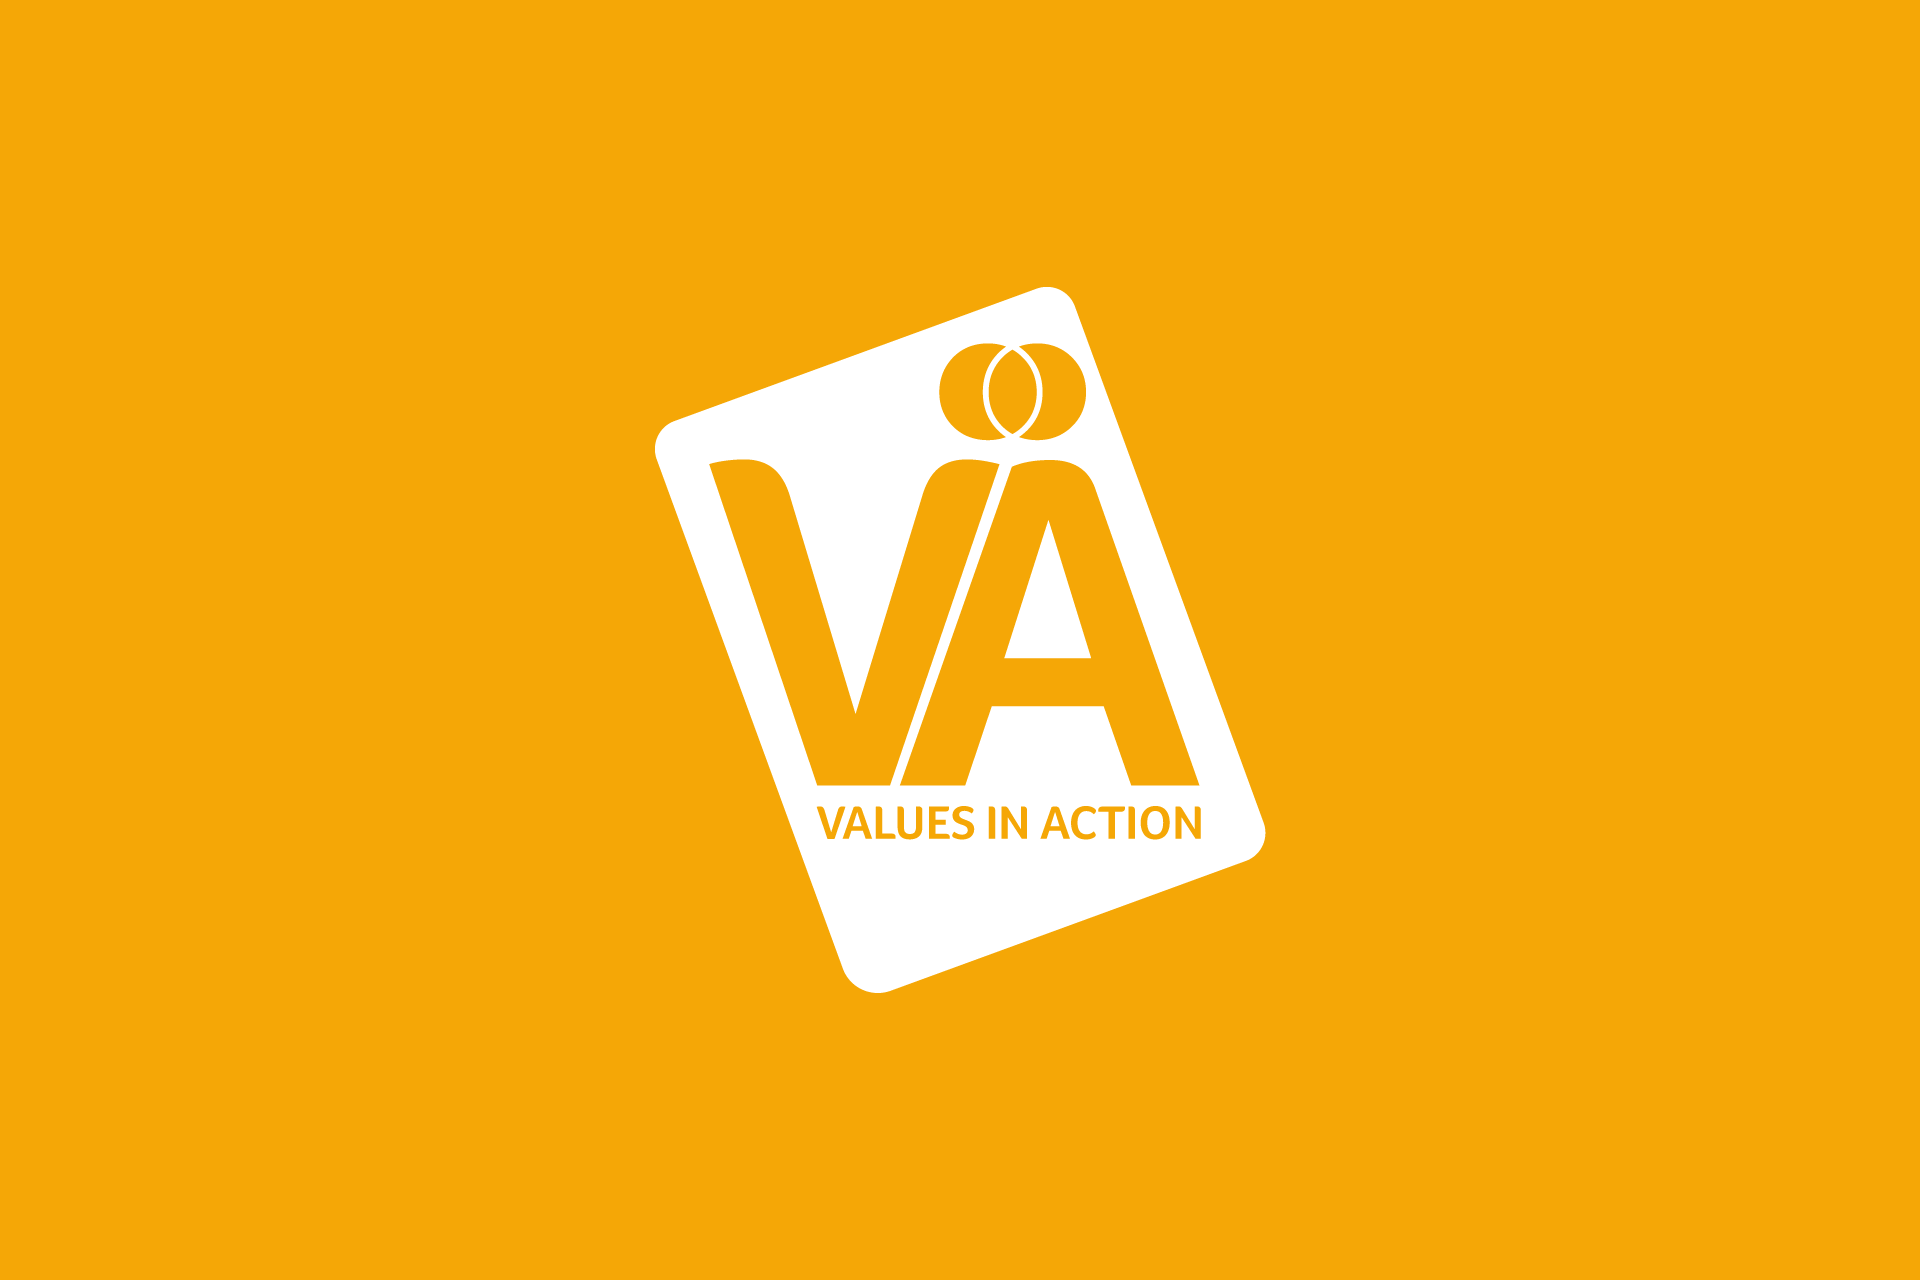 Cover image: Values in Action Brand Identity